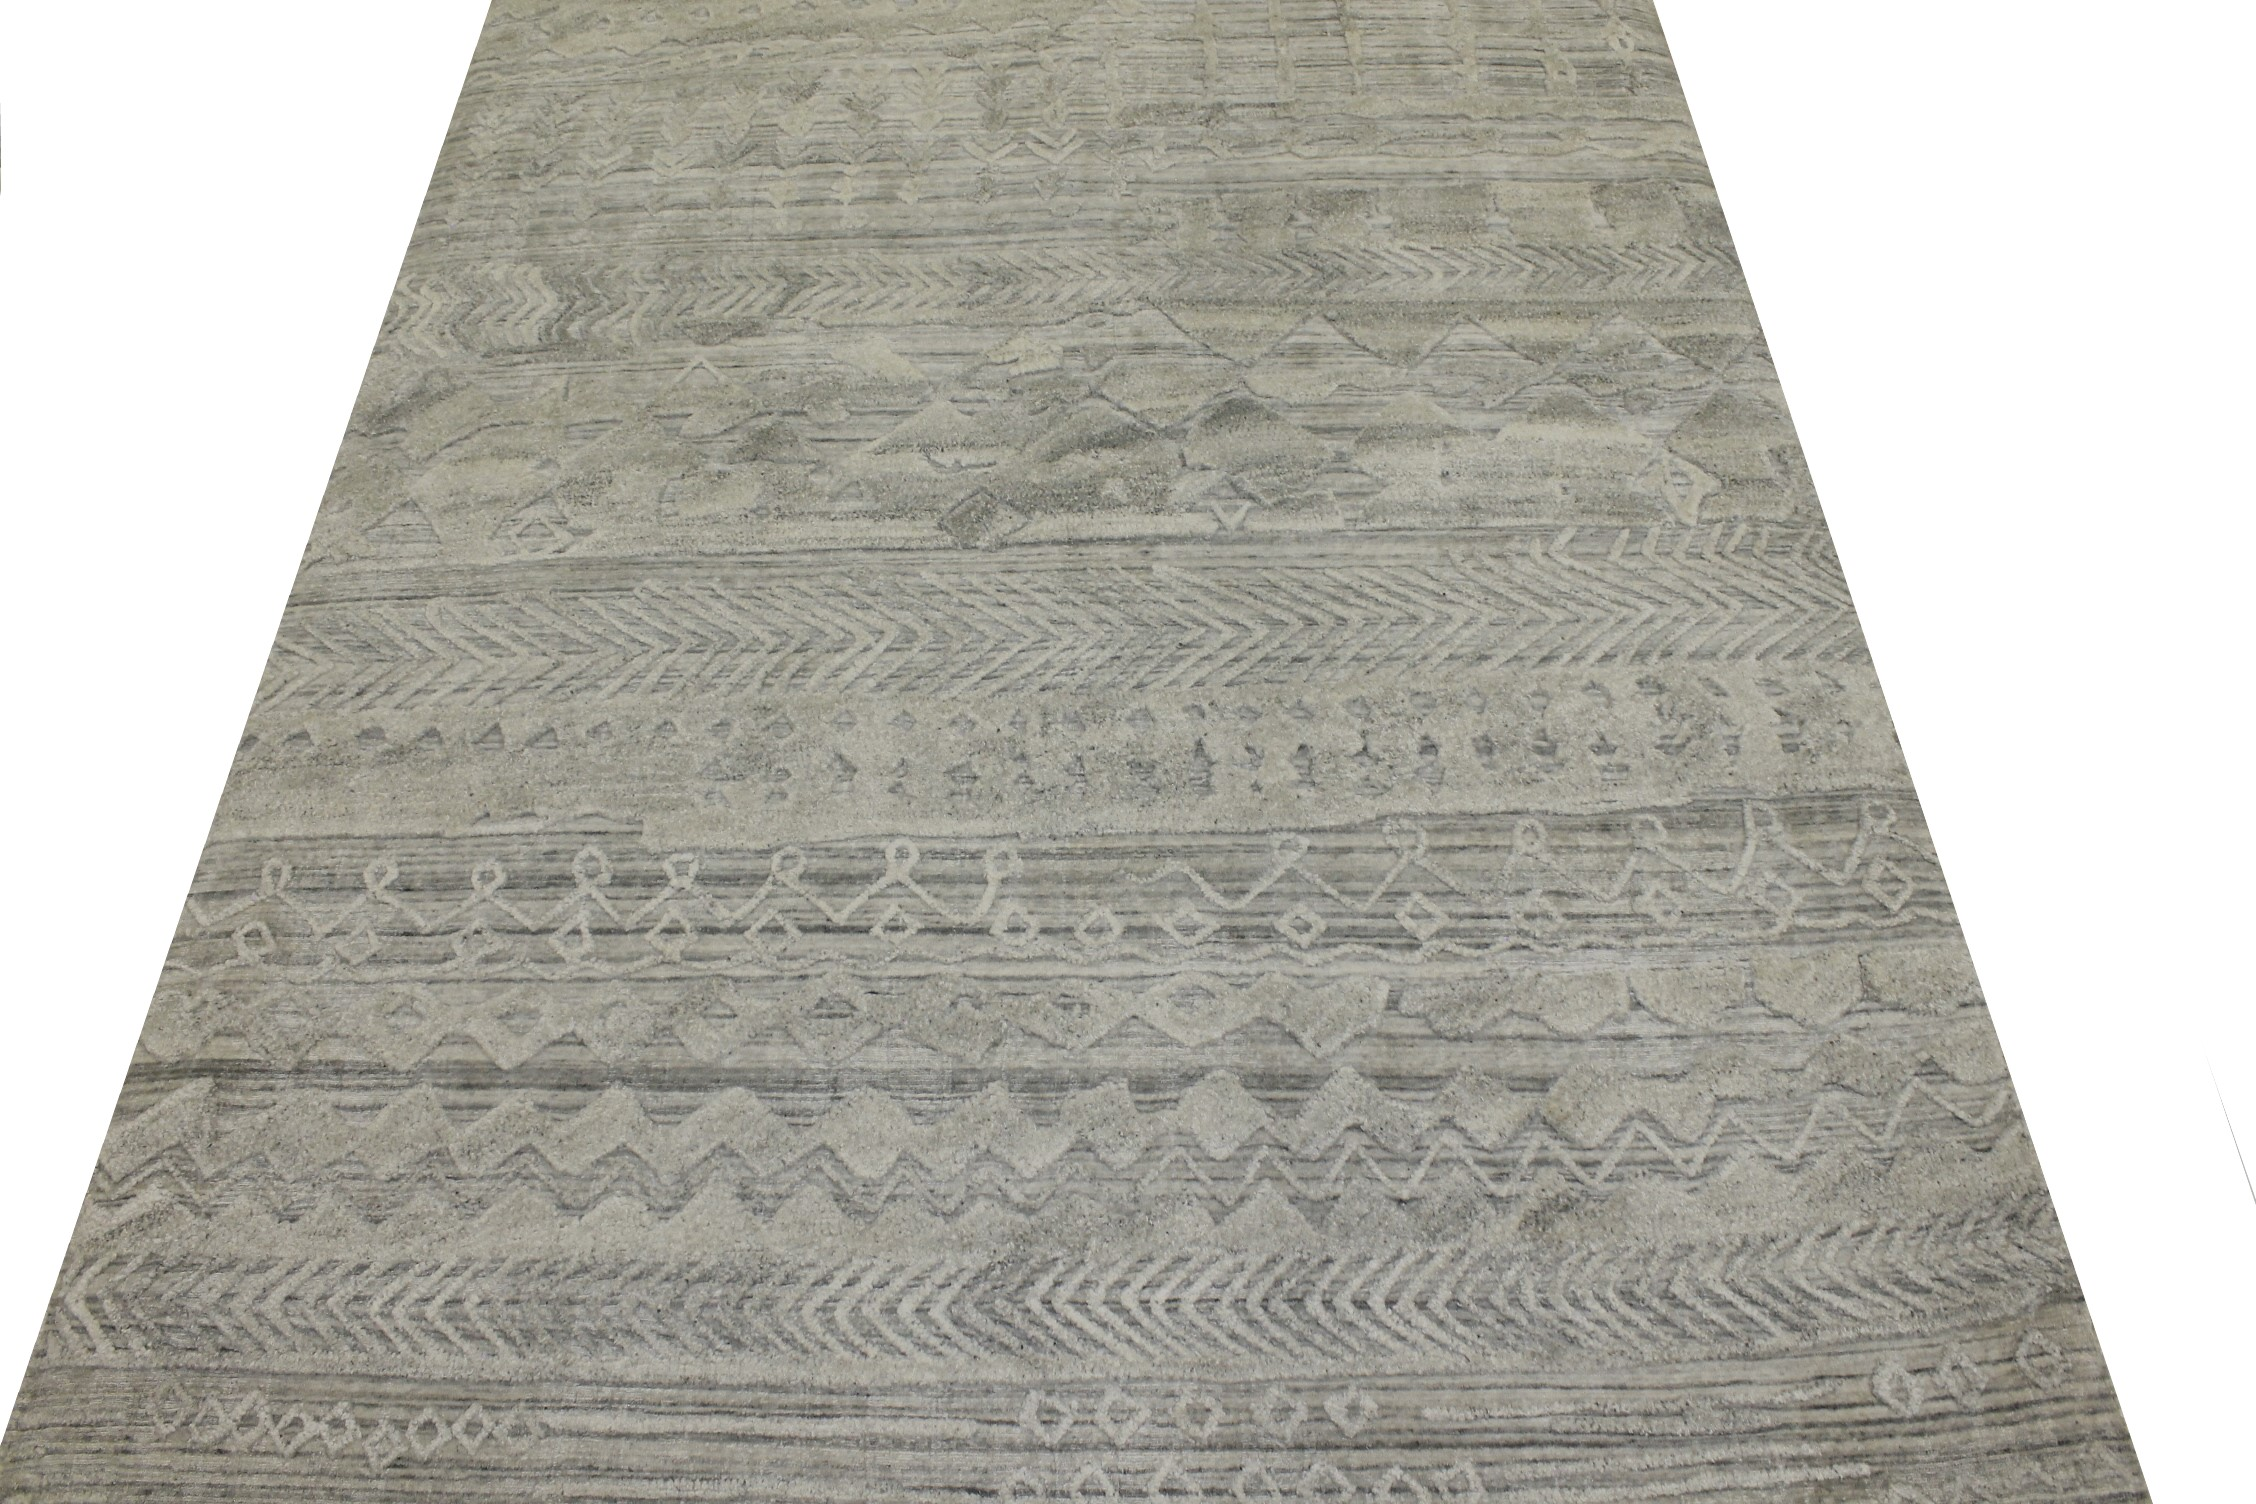 5x7/8 Contemporary Hand Knotted Wool Area Rug - MR022284